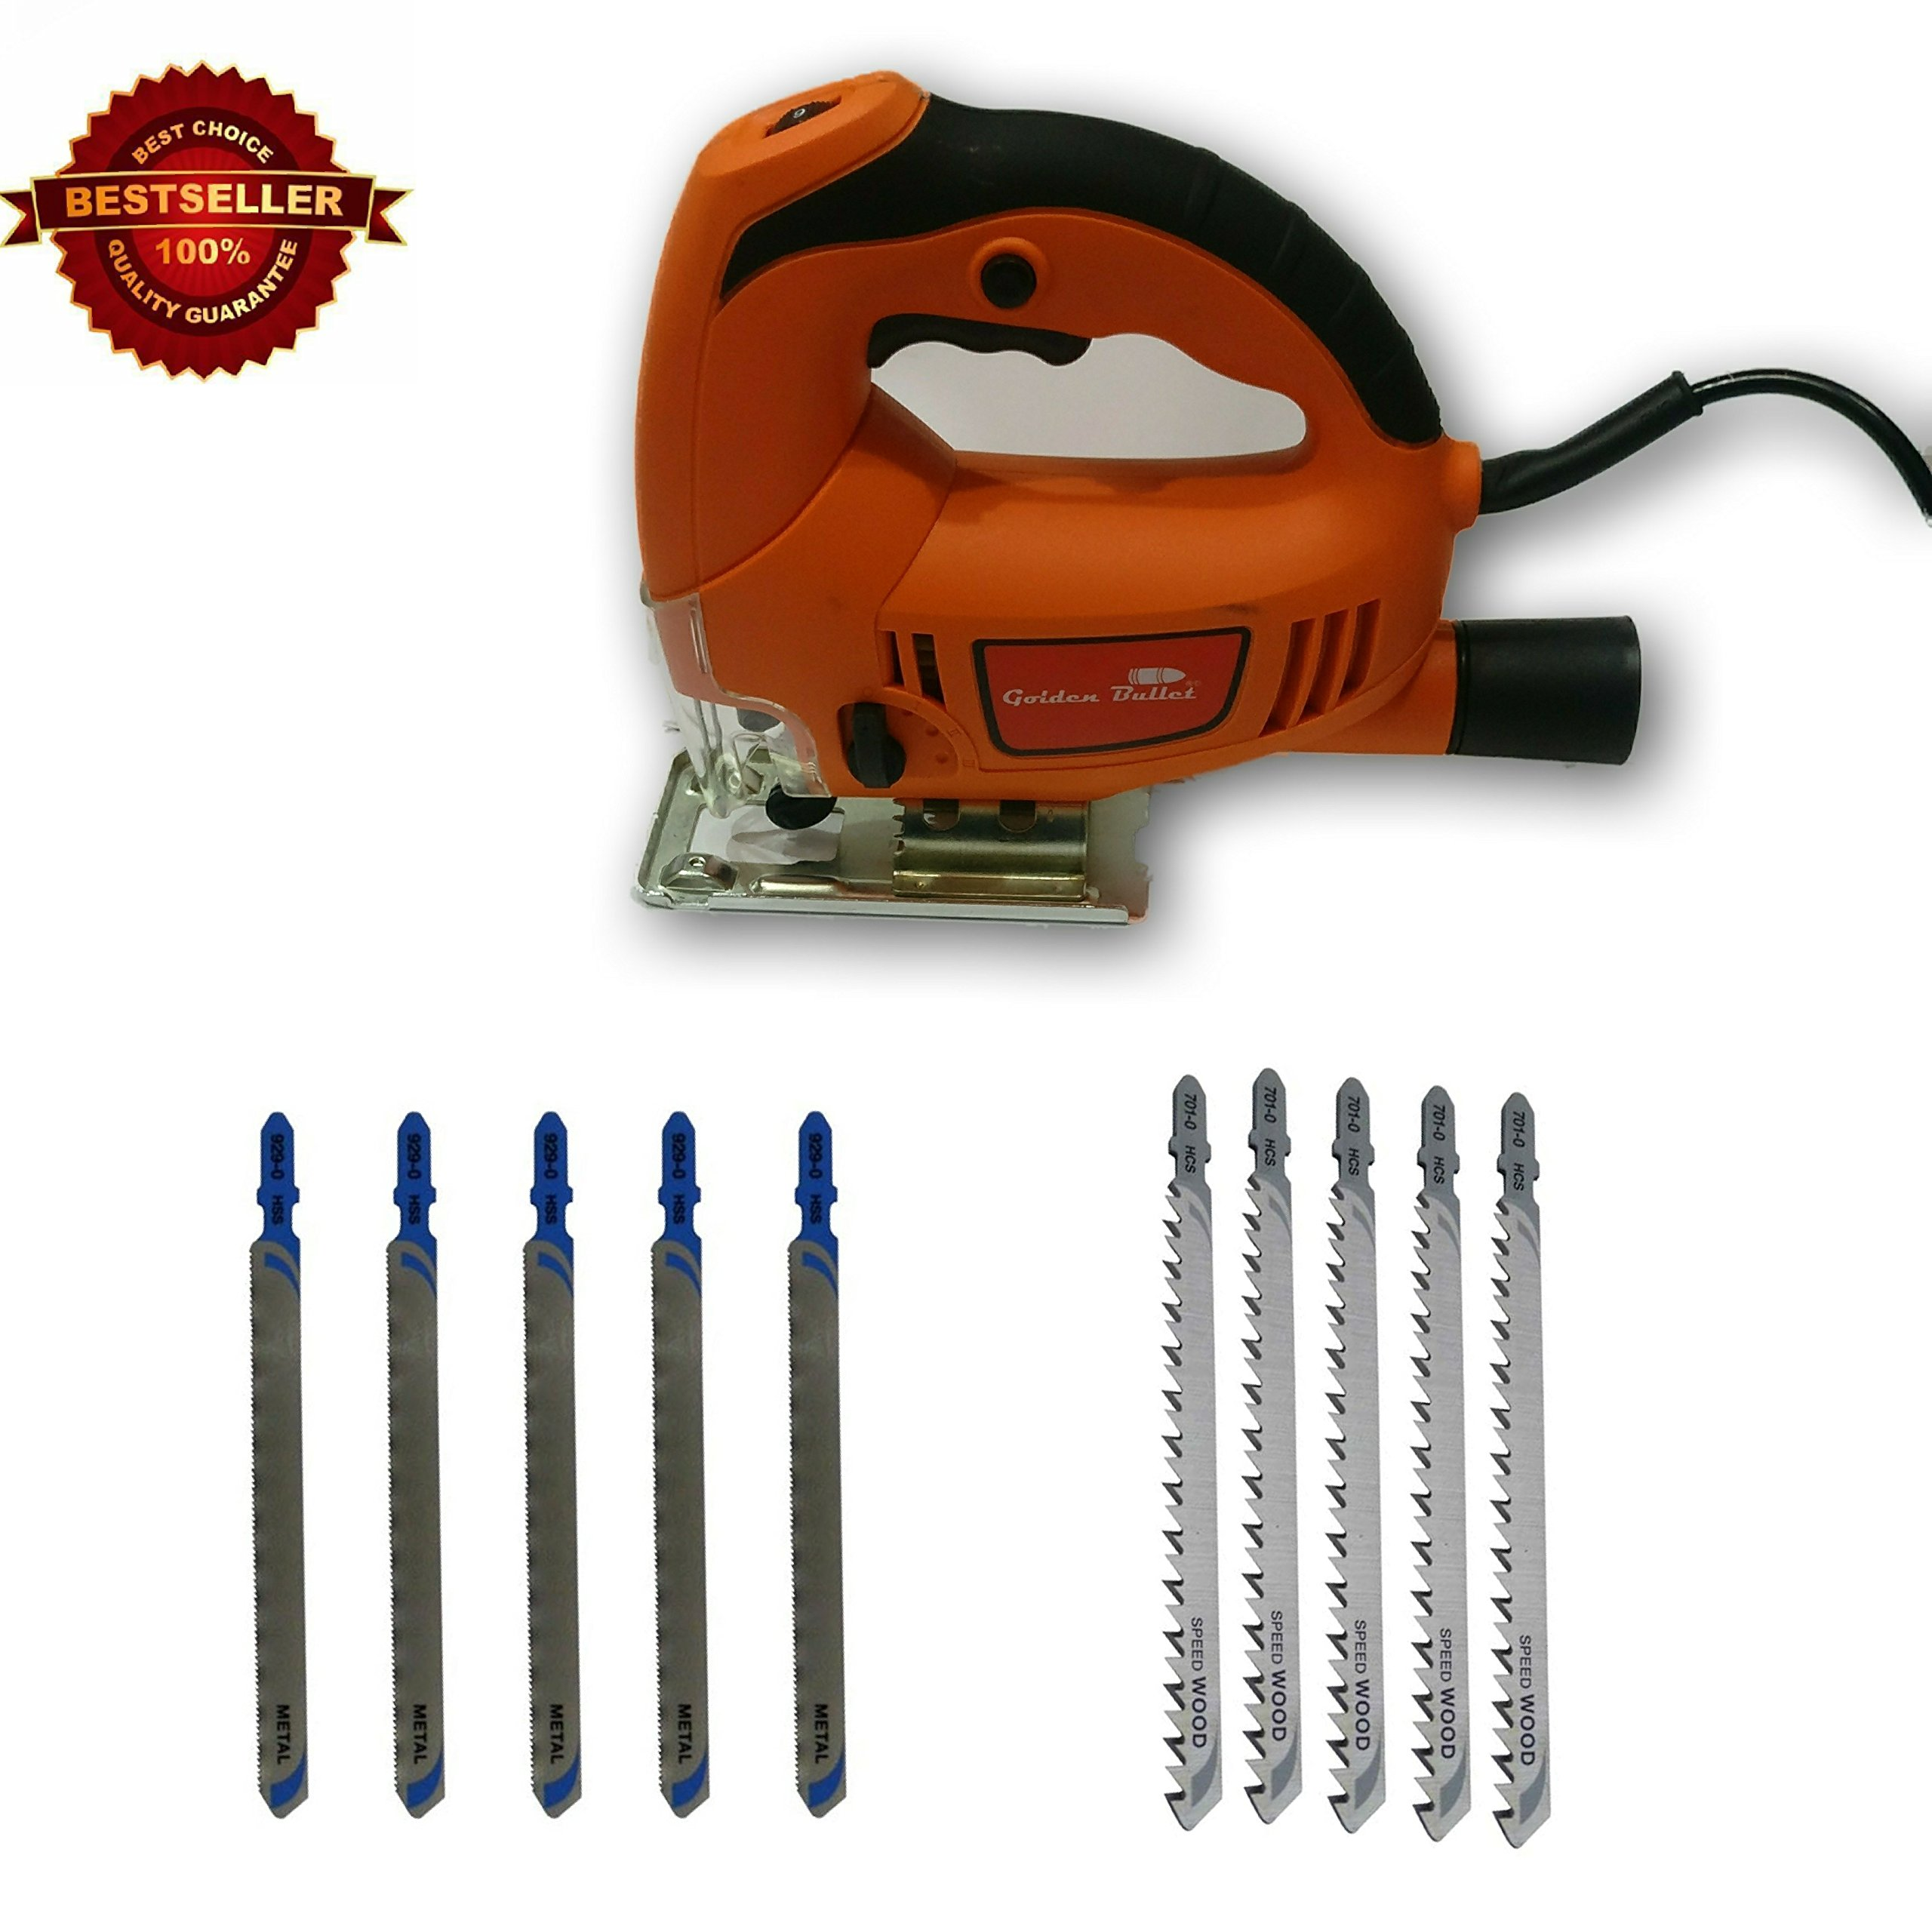 Tools Centre Industrial Pendulum Jigsaw Machine With Variable Speed & Free Blades For Metal